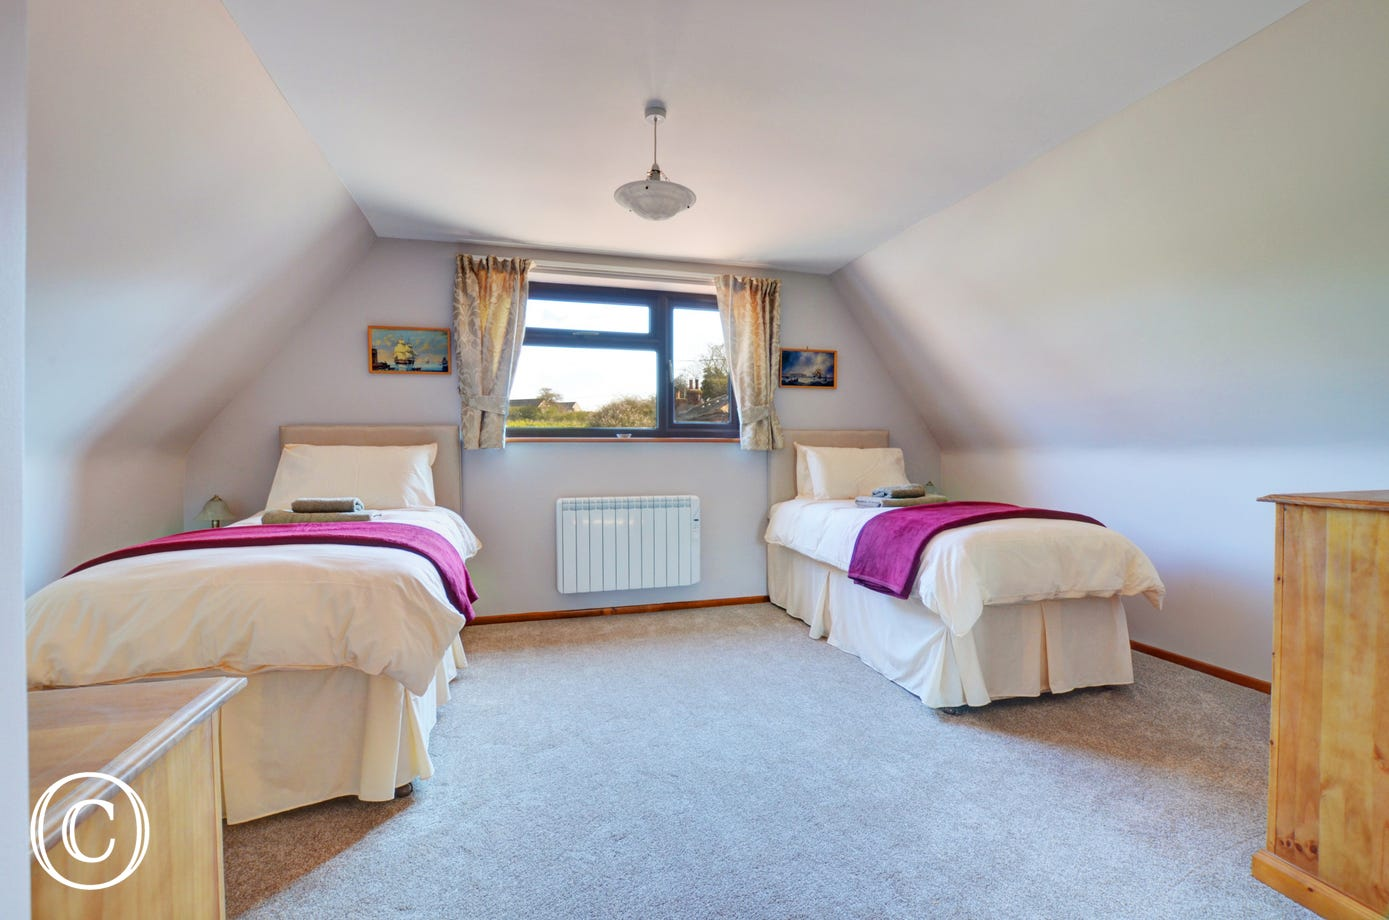 Twin beds within the third bedroom which is a light and airy room